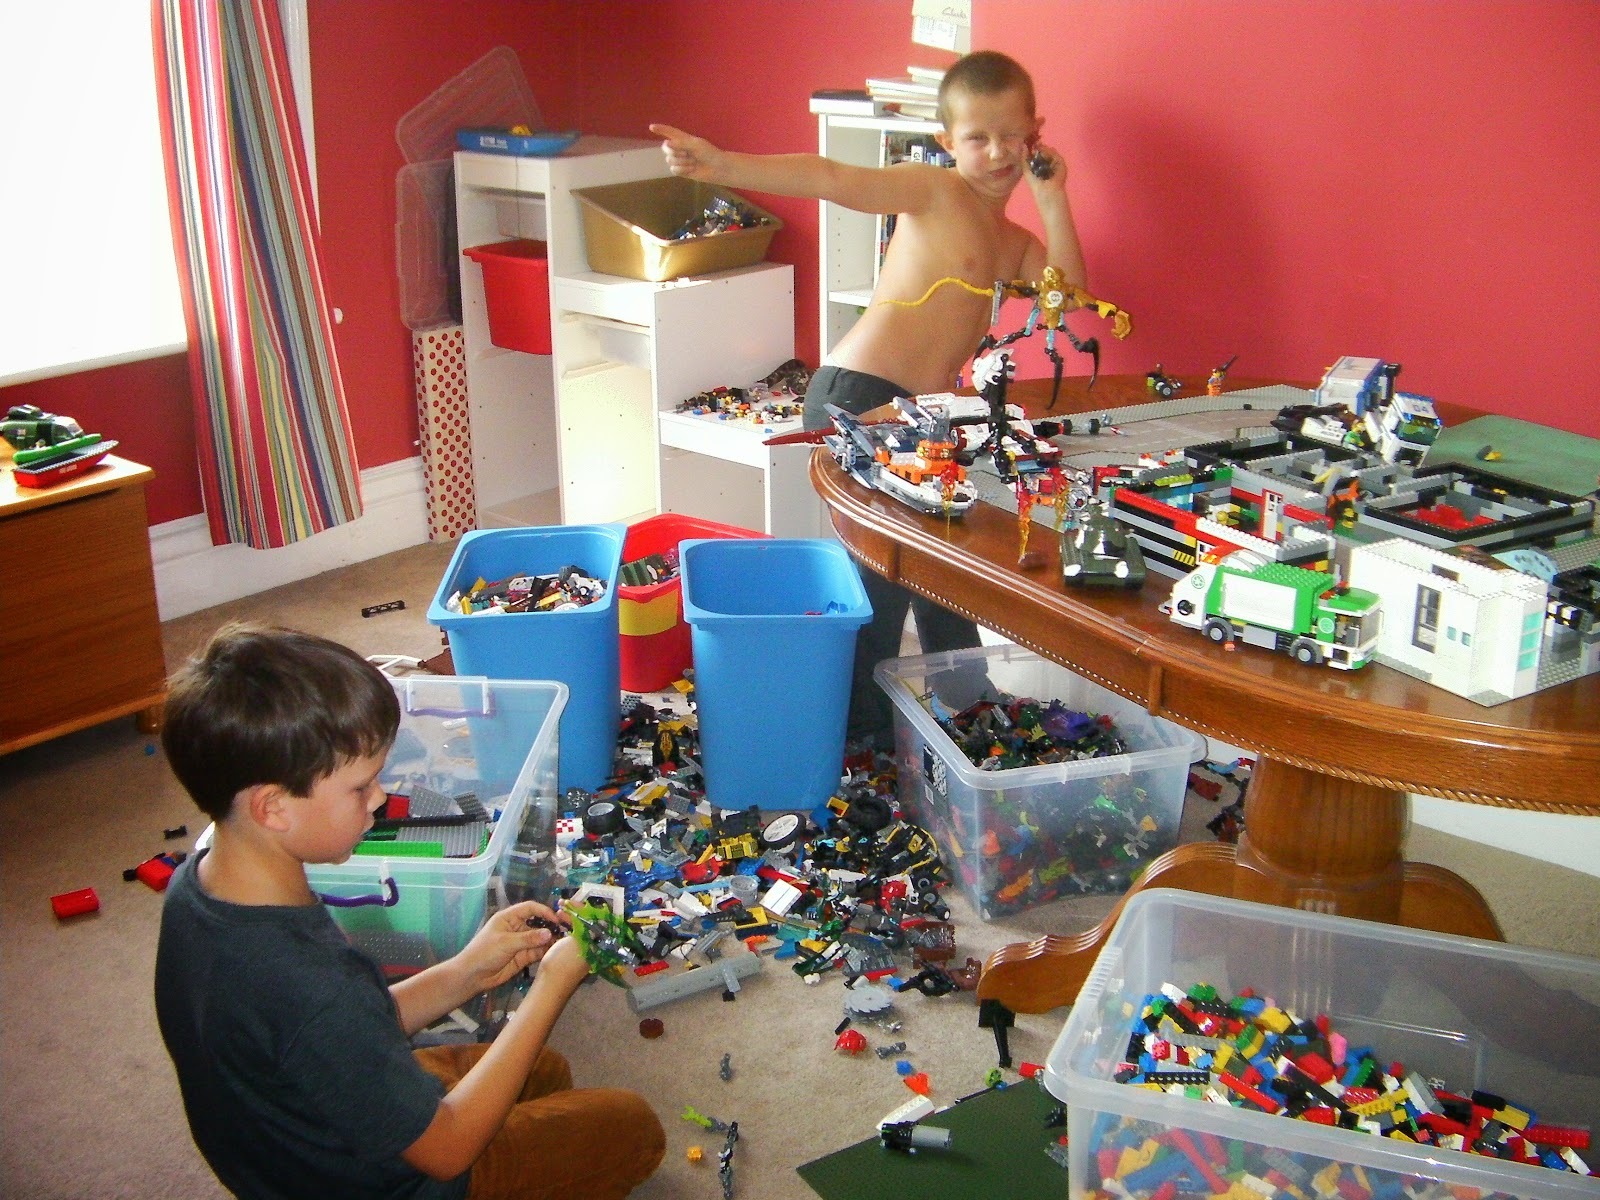 shirtless boy and giant lego collection boss from monsters inc